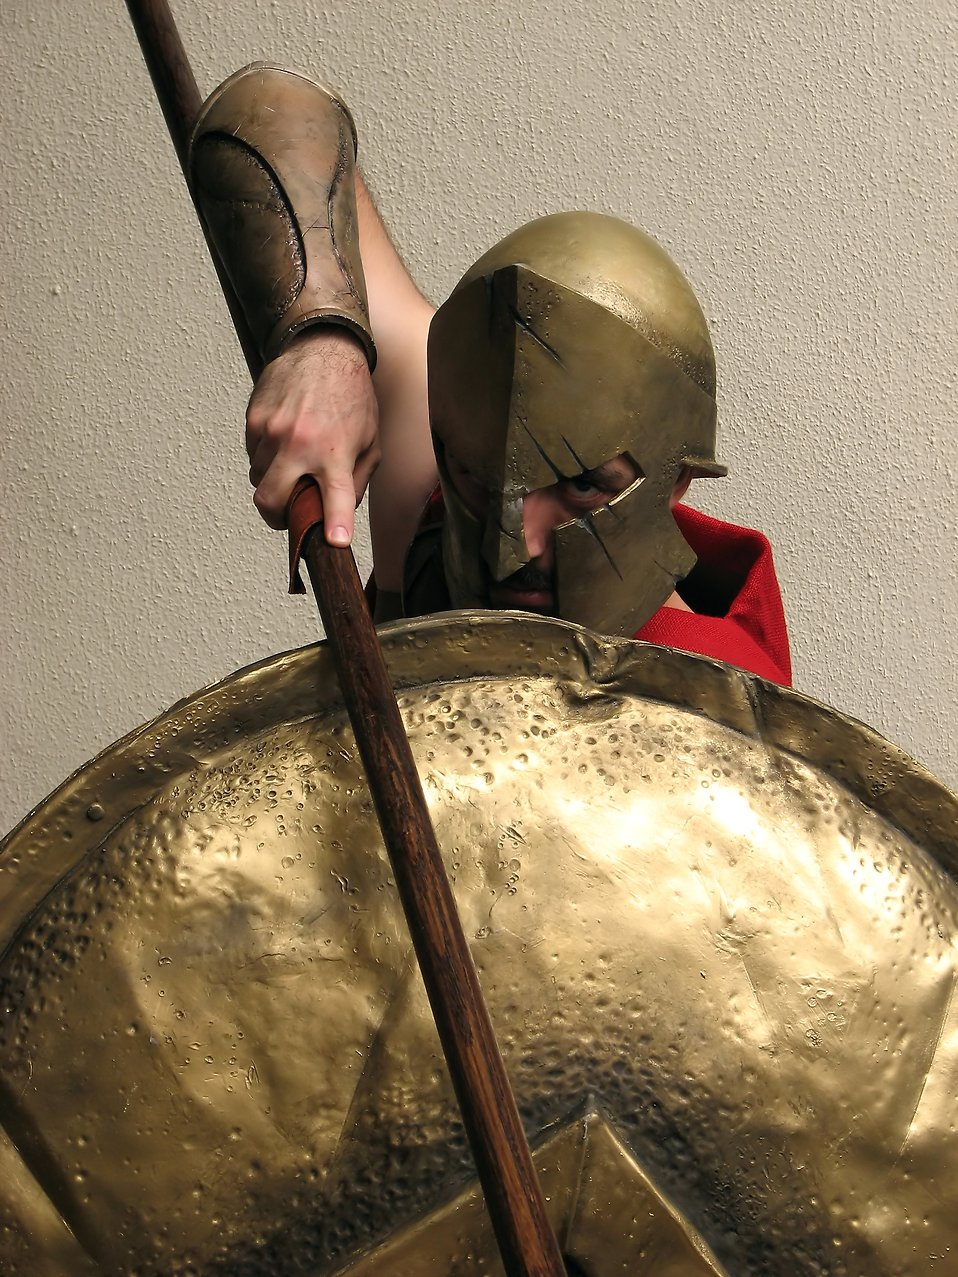 A man in Spartan armor costume at Dragoncon 2009 in Atlanta, Georgia : Free Stock Photo